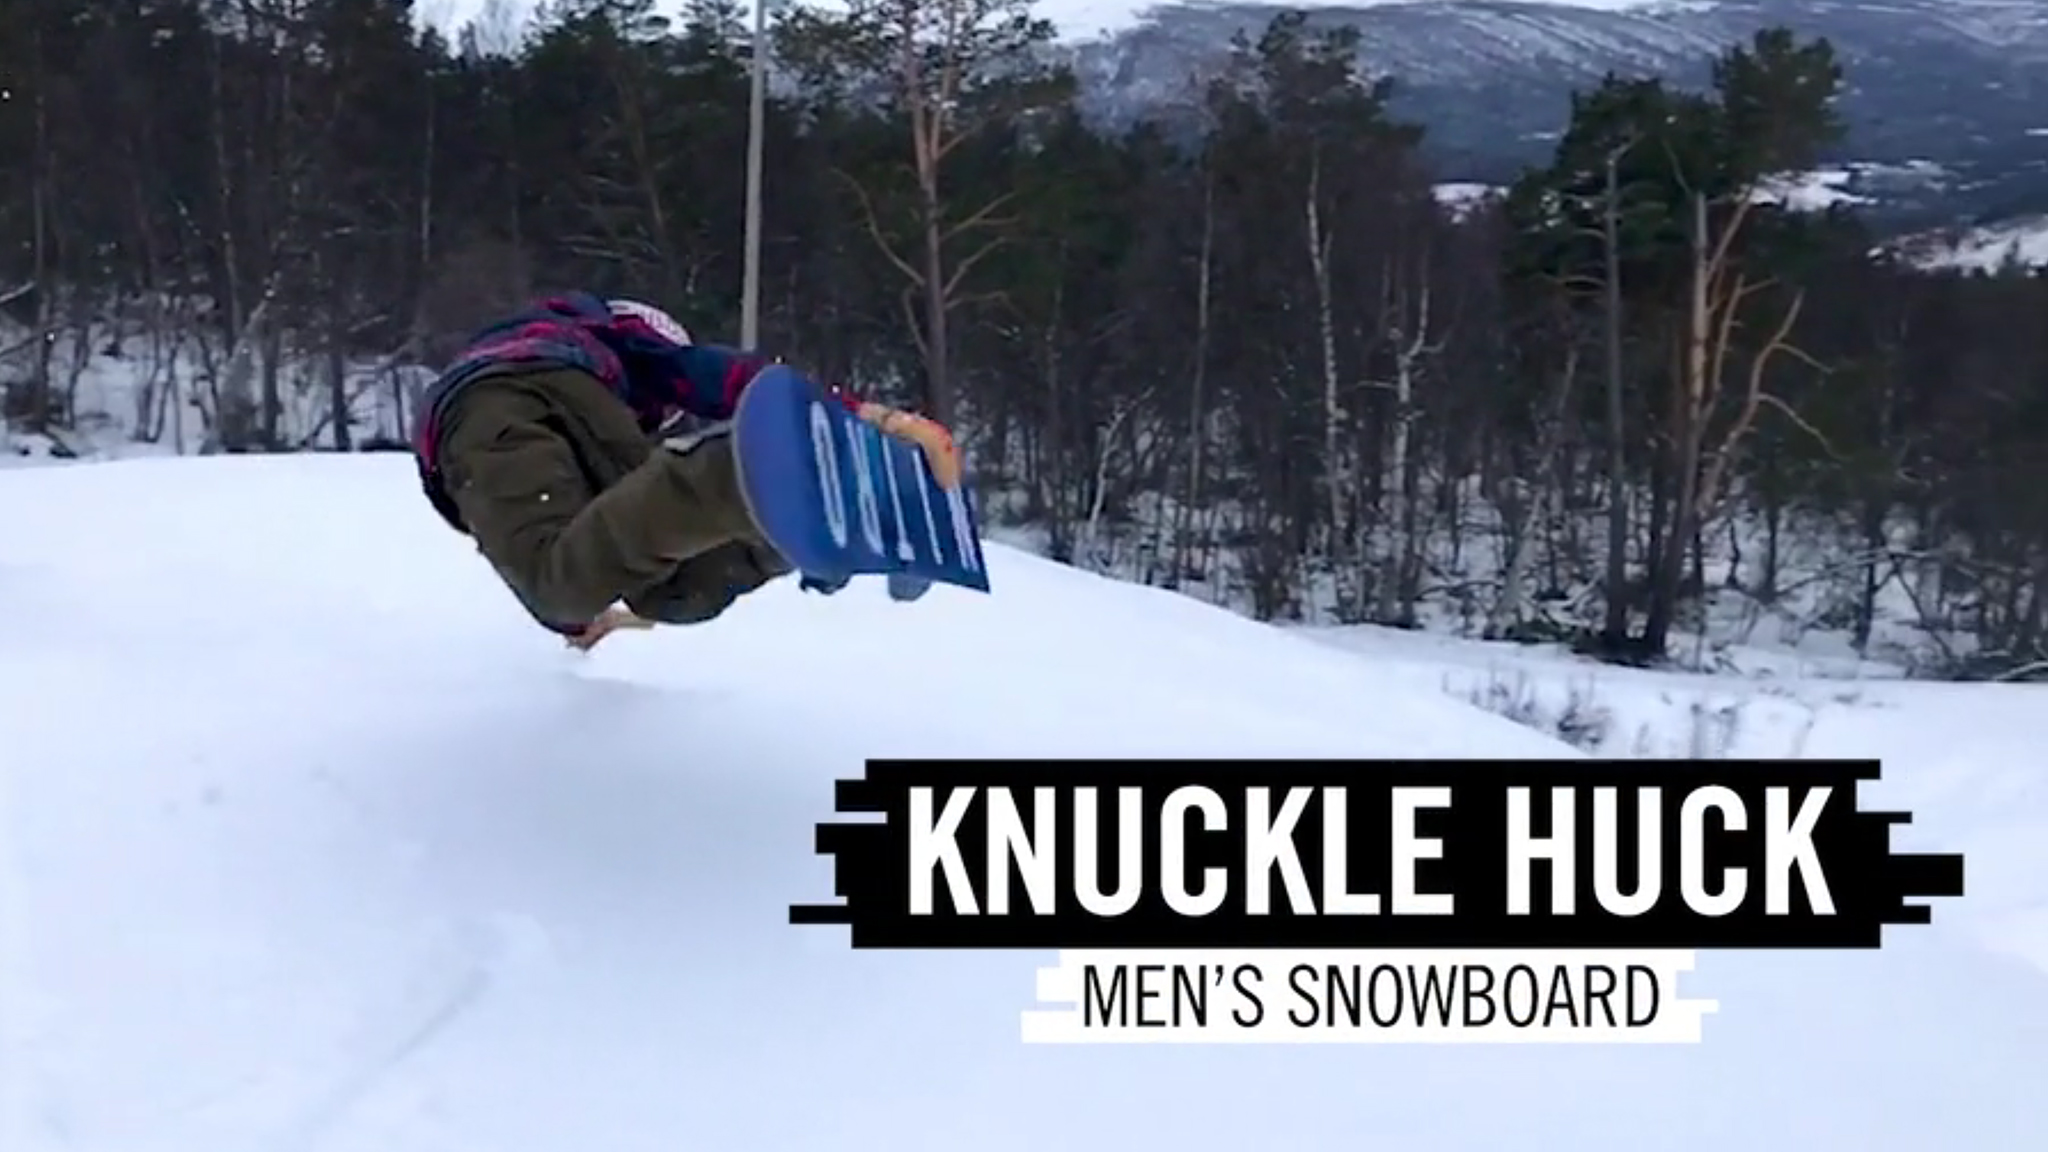 Knuckle huck is one of the new disciplines being introduced at X Games Aspen 2019.